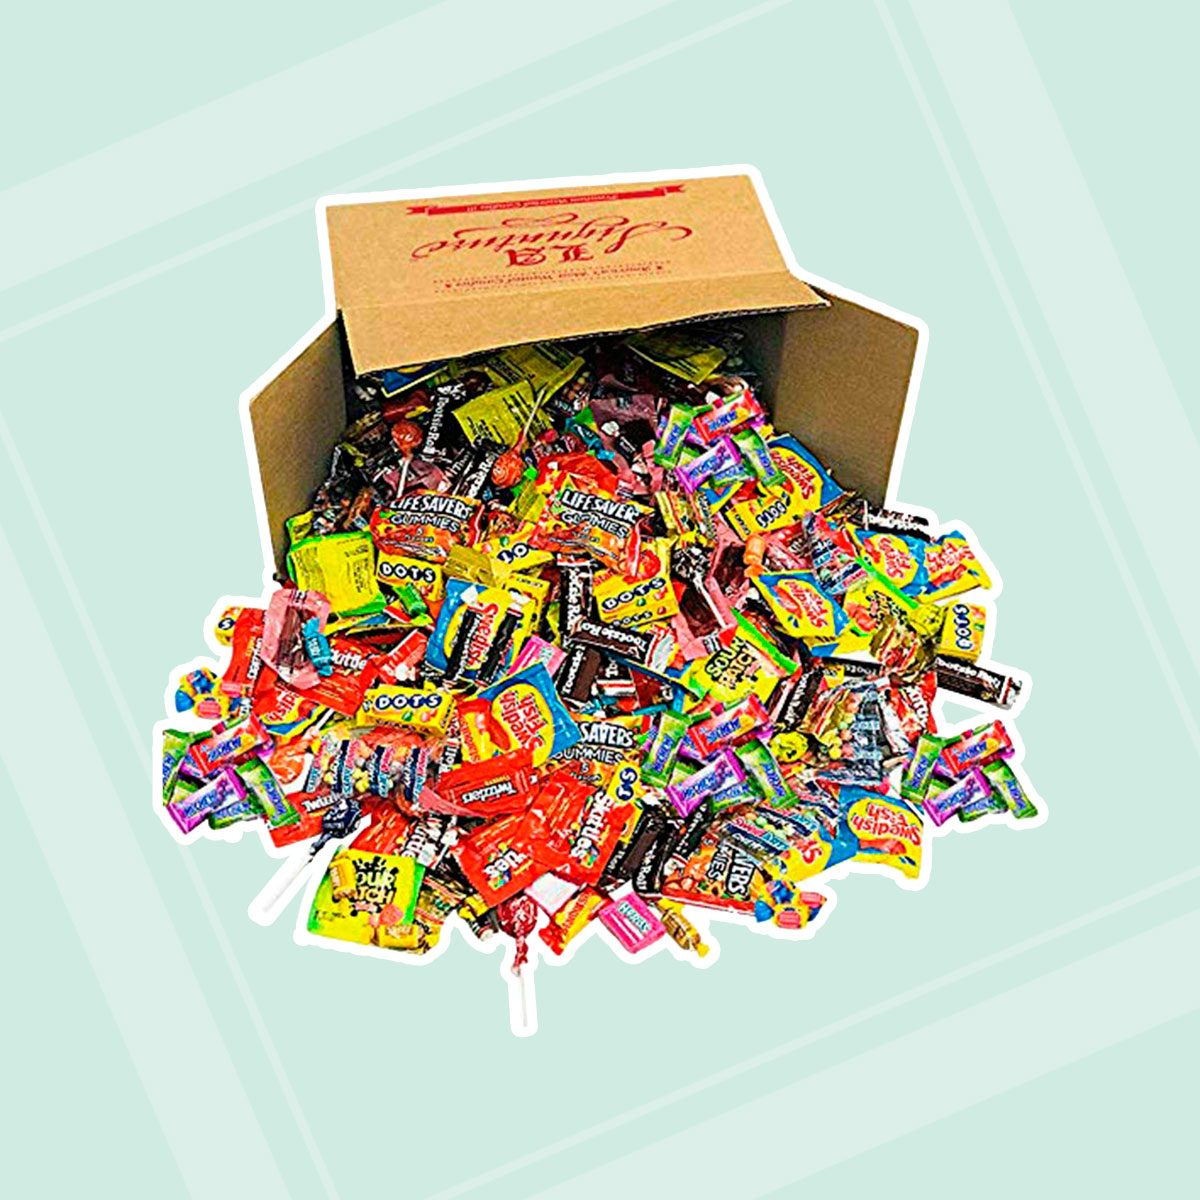 Assorted candy mix box